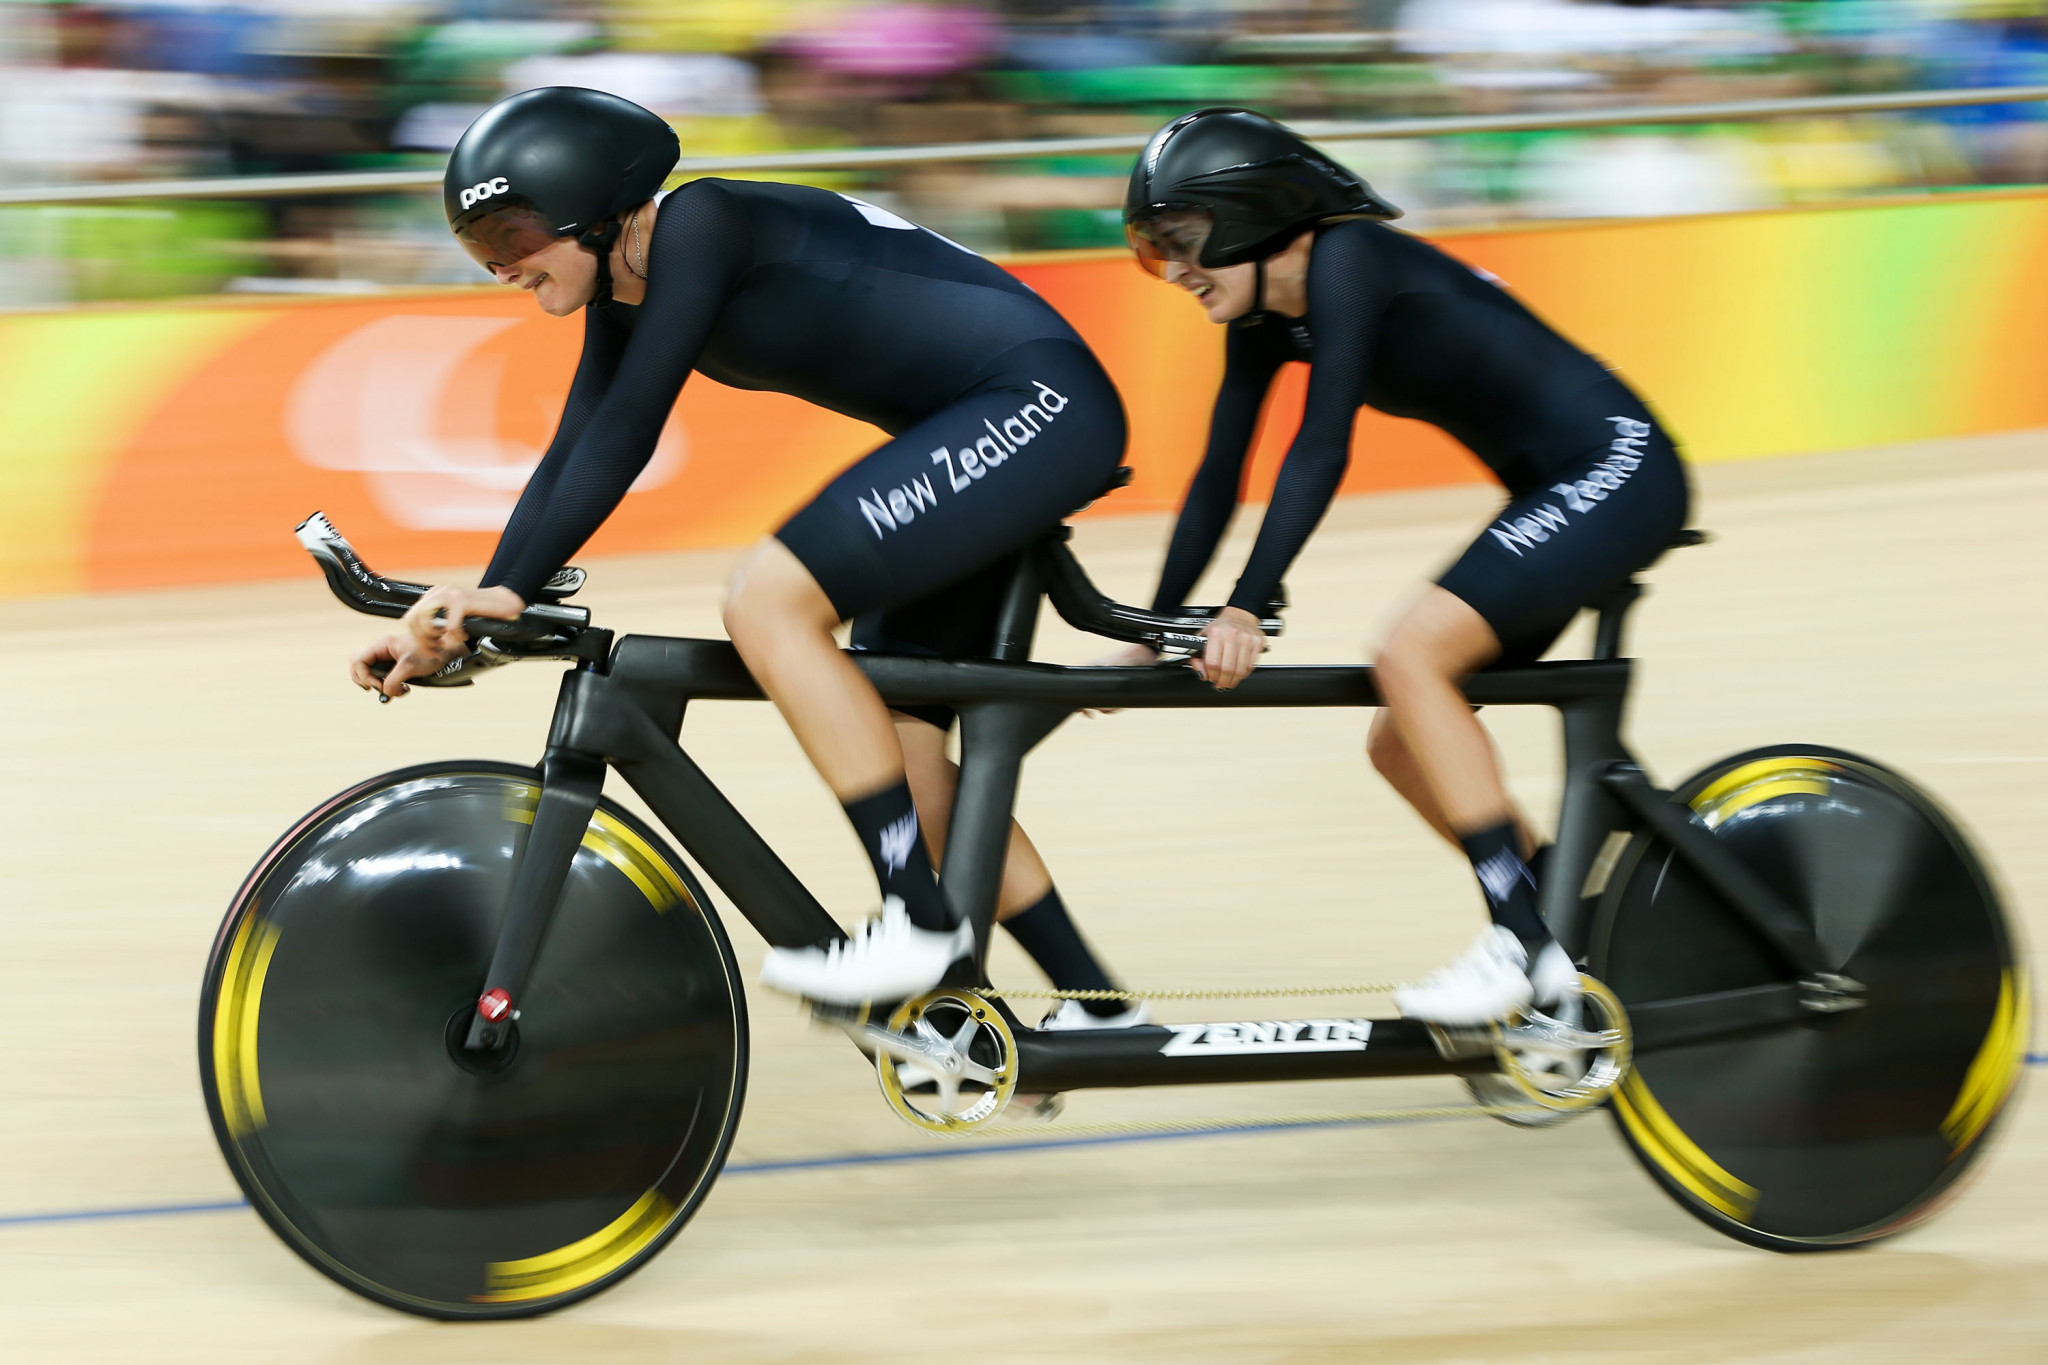 Amanda Cameron and Hannah van Kampen will compete for New Zealand at the 2019 UCI Para Cycling Track World Championships ©Getty Images